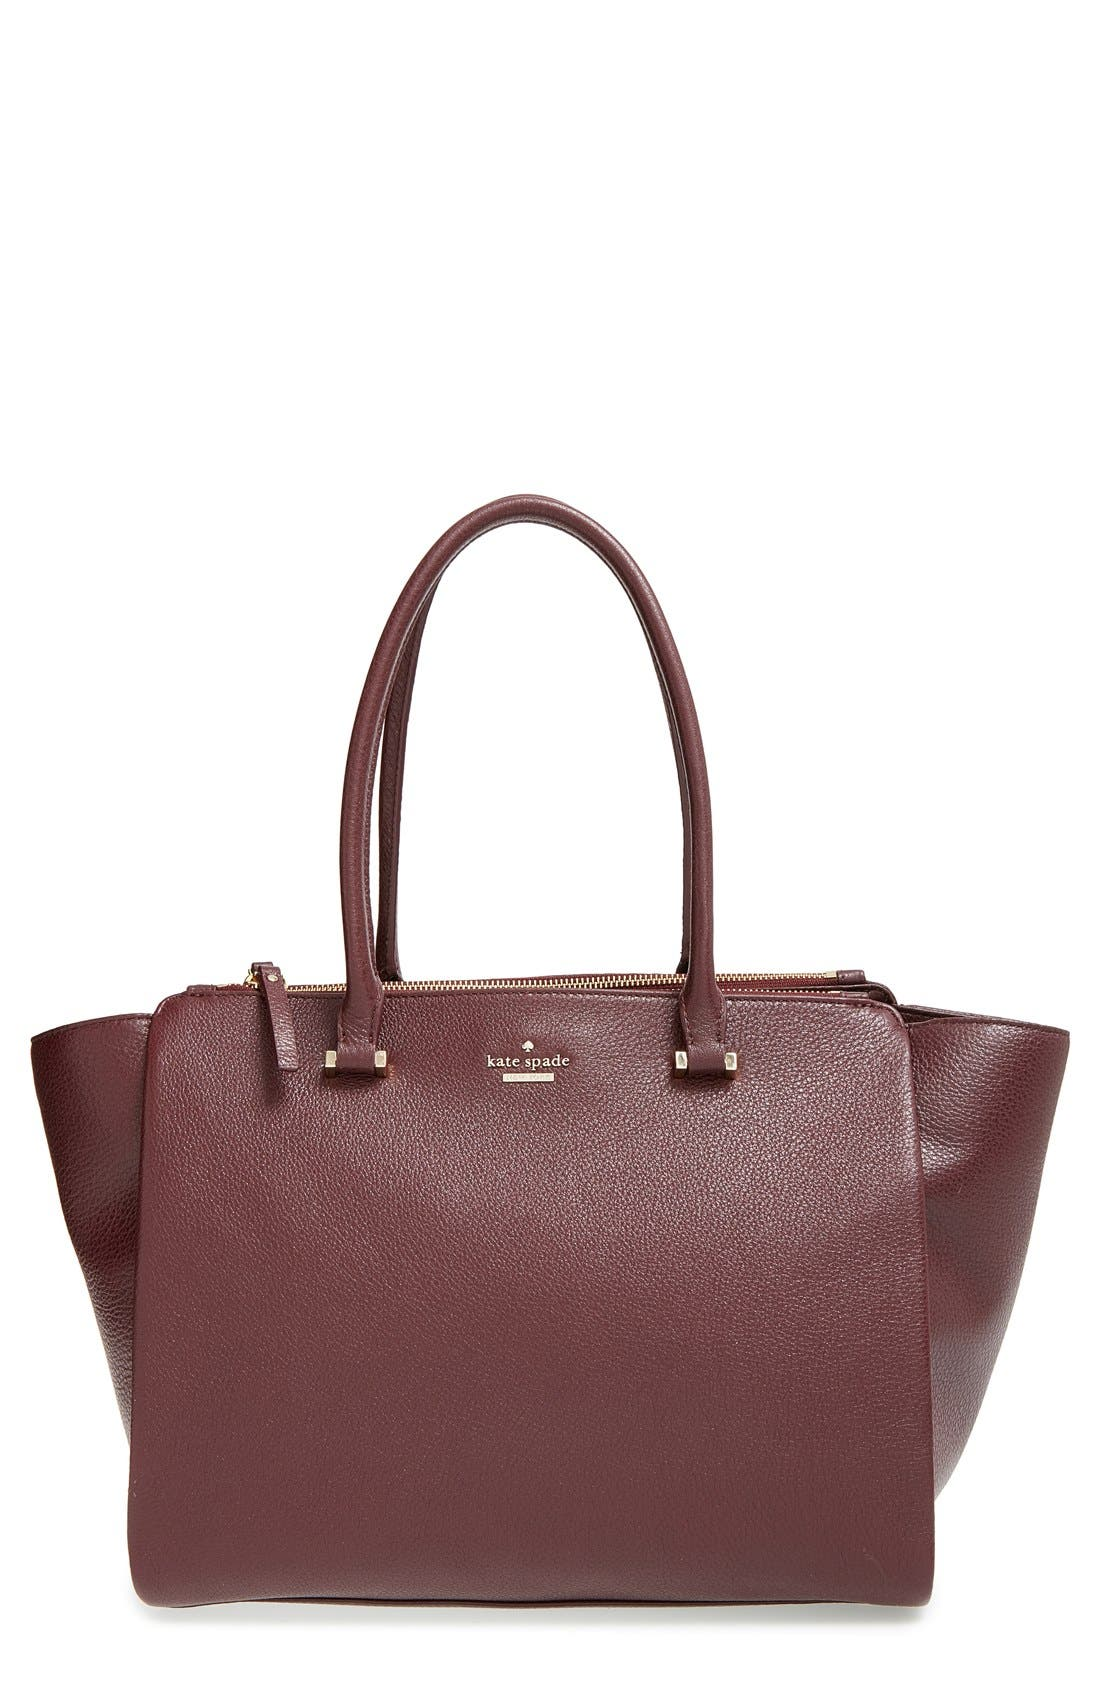 Main Image - kate spade new york 'emerson place - smooth holland' leather tote